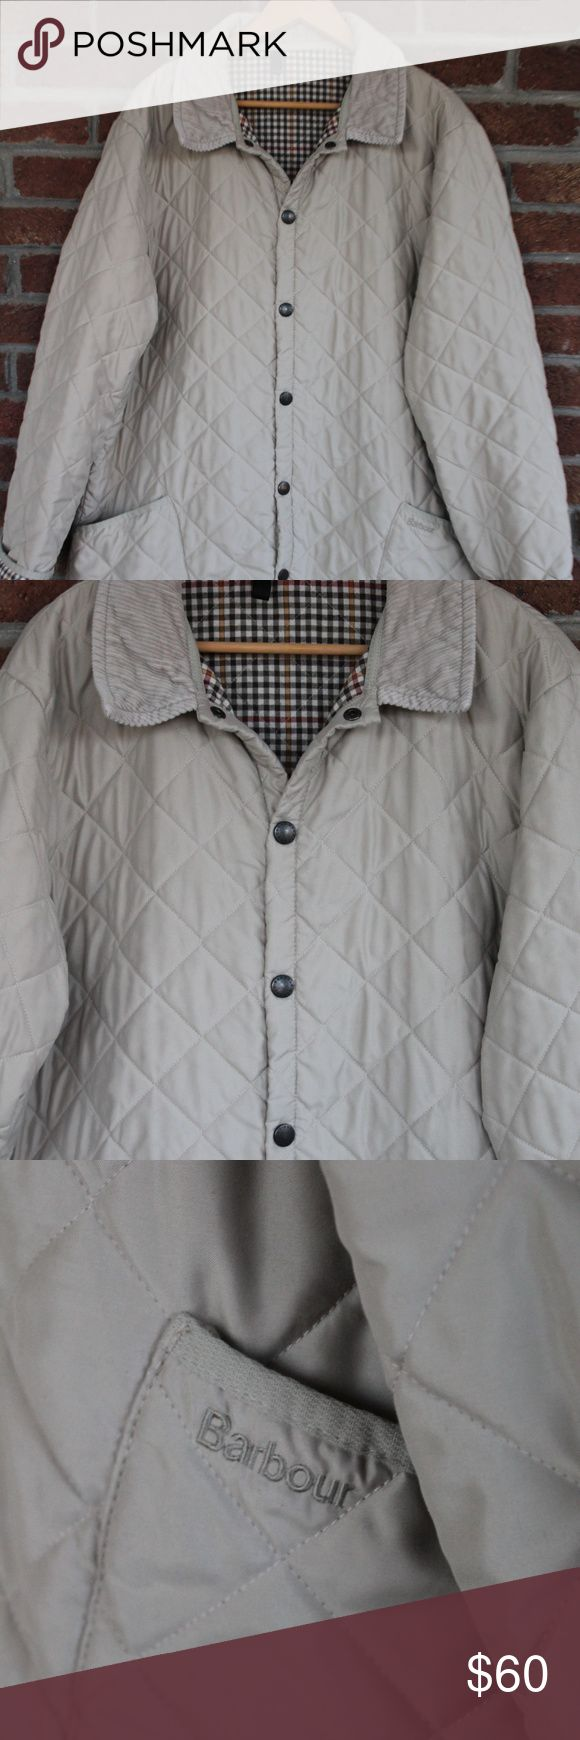 ladies barbour jacket / coat.  size XL. clean, like new and from a smoke free home. Barbour Jackets & Coats